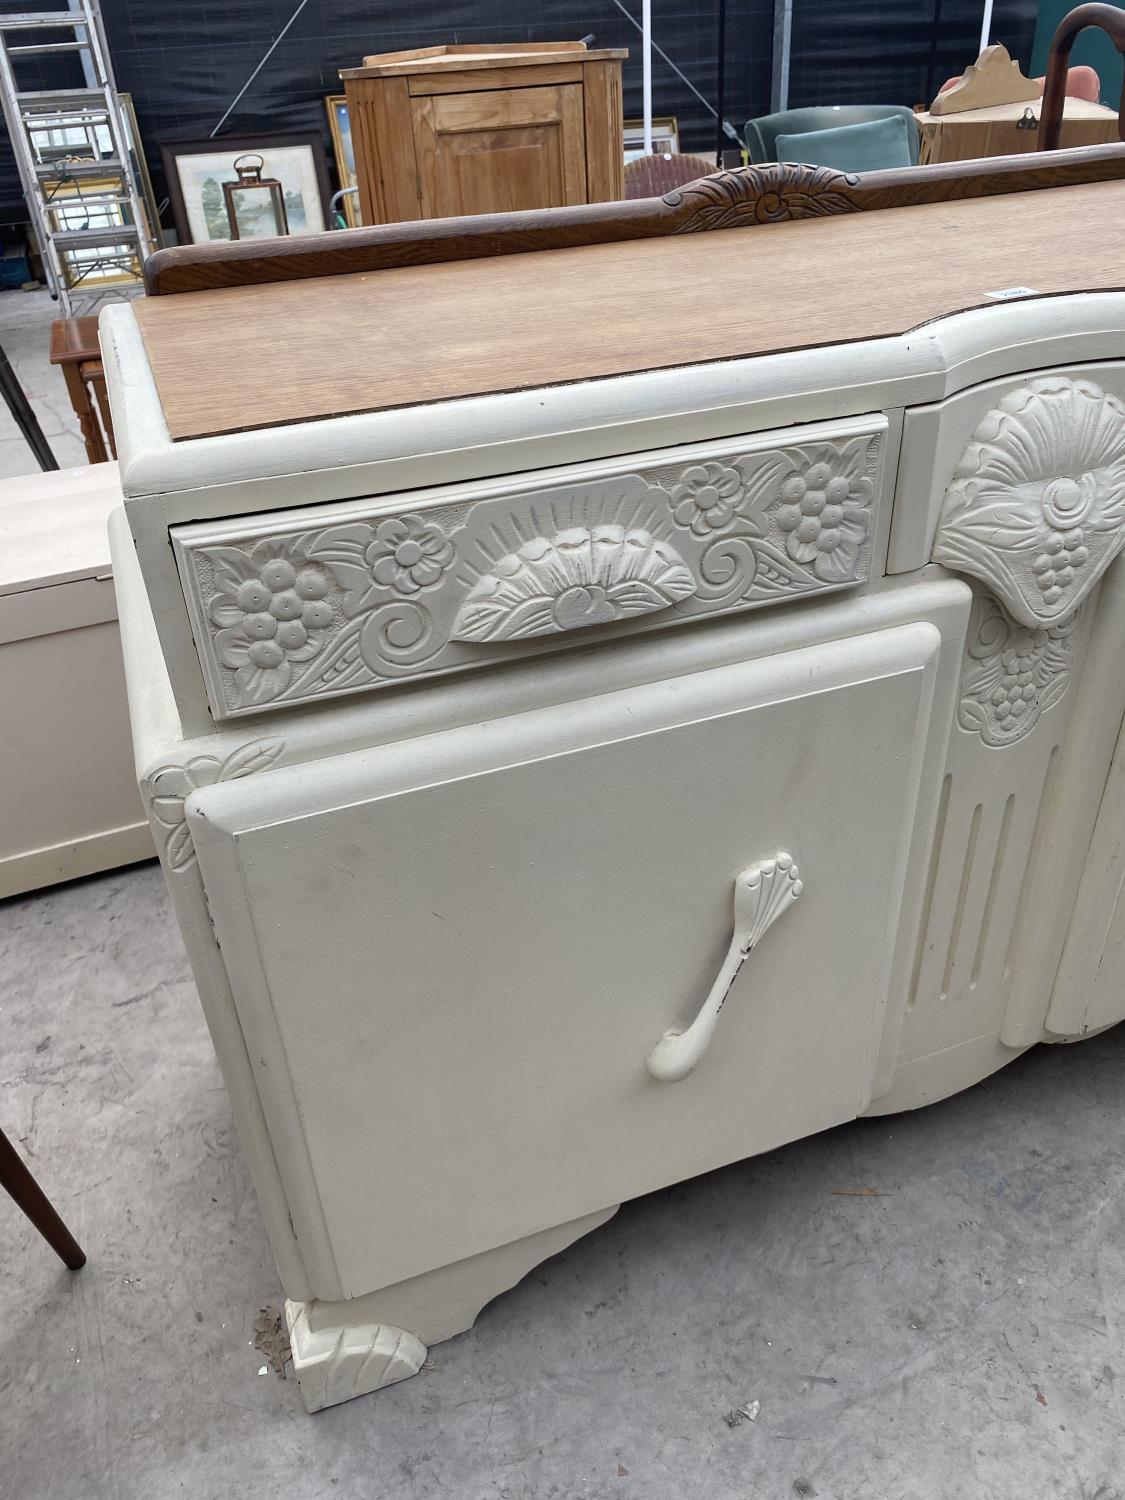 """AN EARLY 20TH CENTURY OAK SIDEBOARD WITH SHABBY CHIC PAINTING, 54"""" WIDE - Image 2 of 4"""